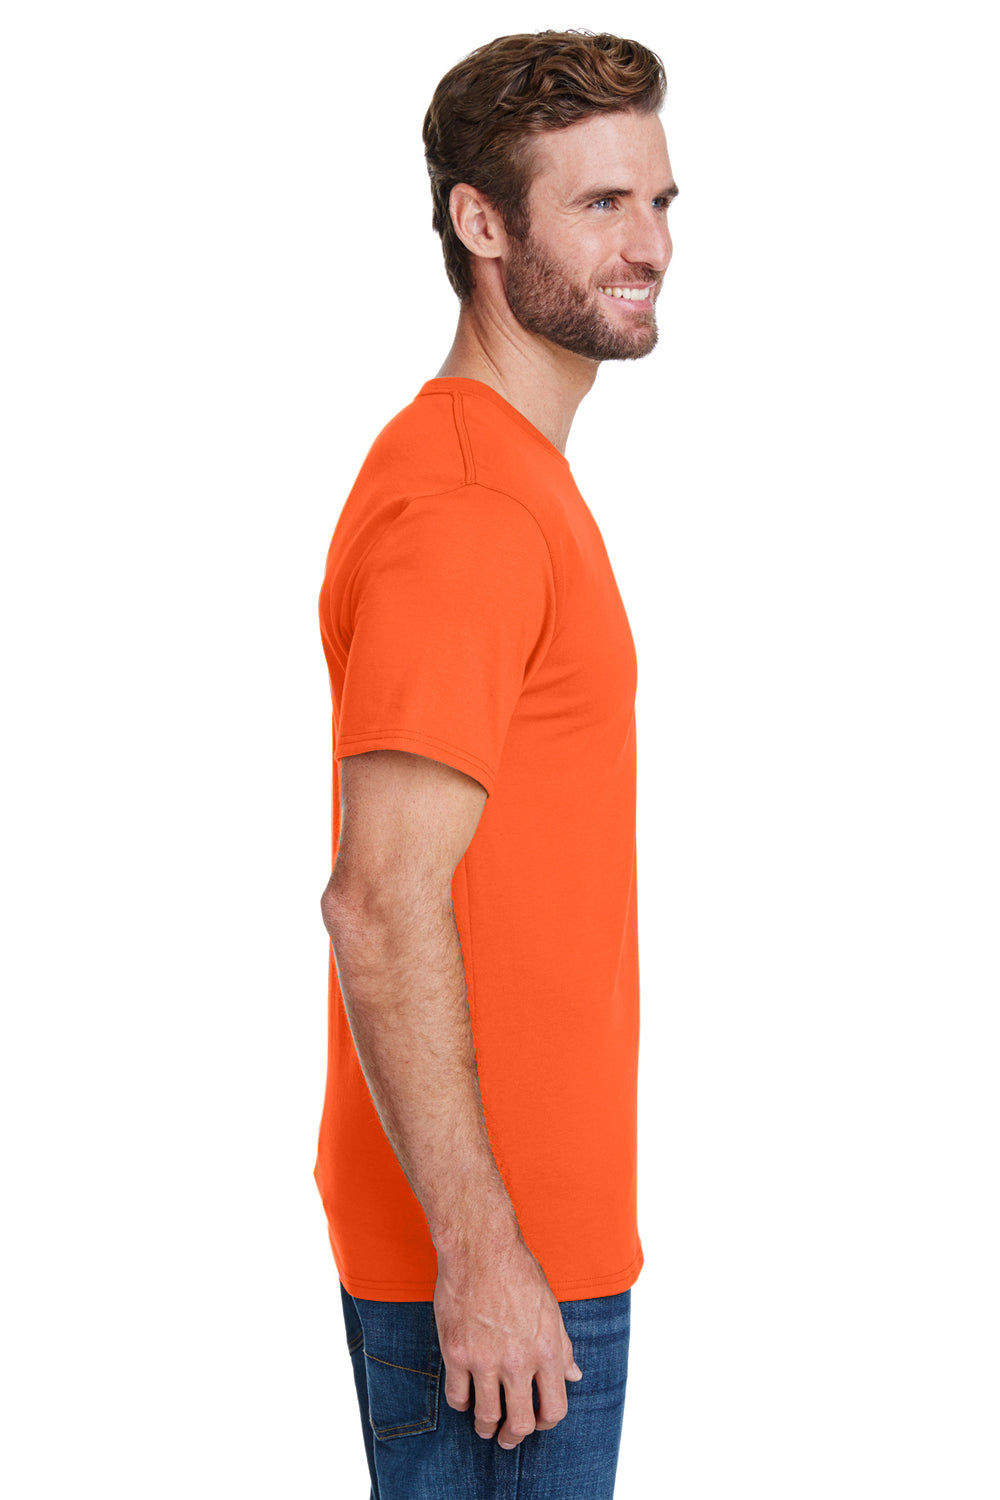 Hanes W110 Mens Workwear Short Sleeve Crewneck T-Shirt w/ Pocket Safety Orange Side